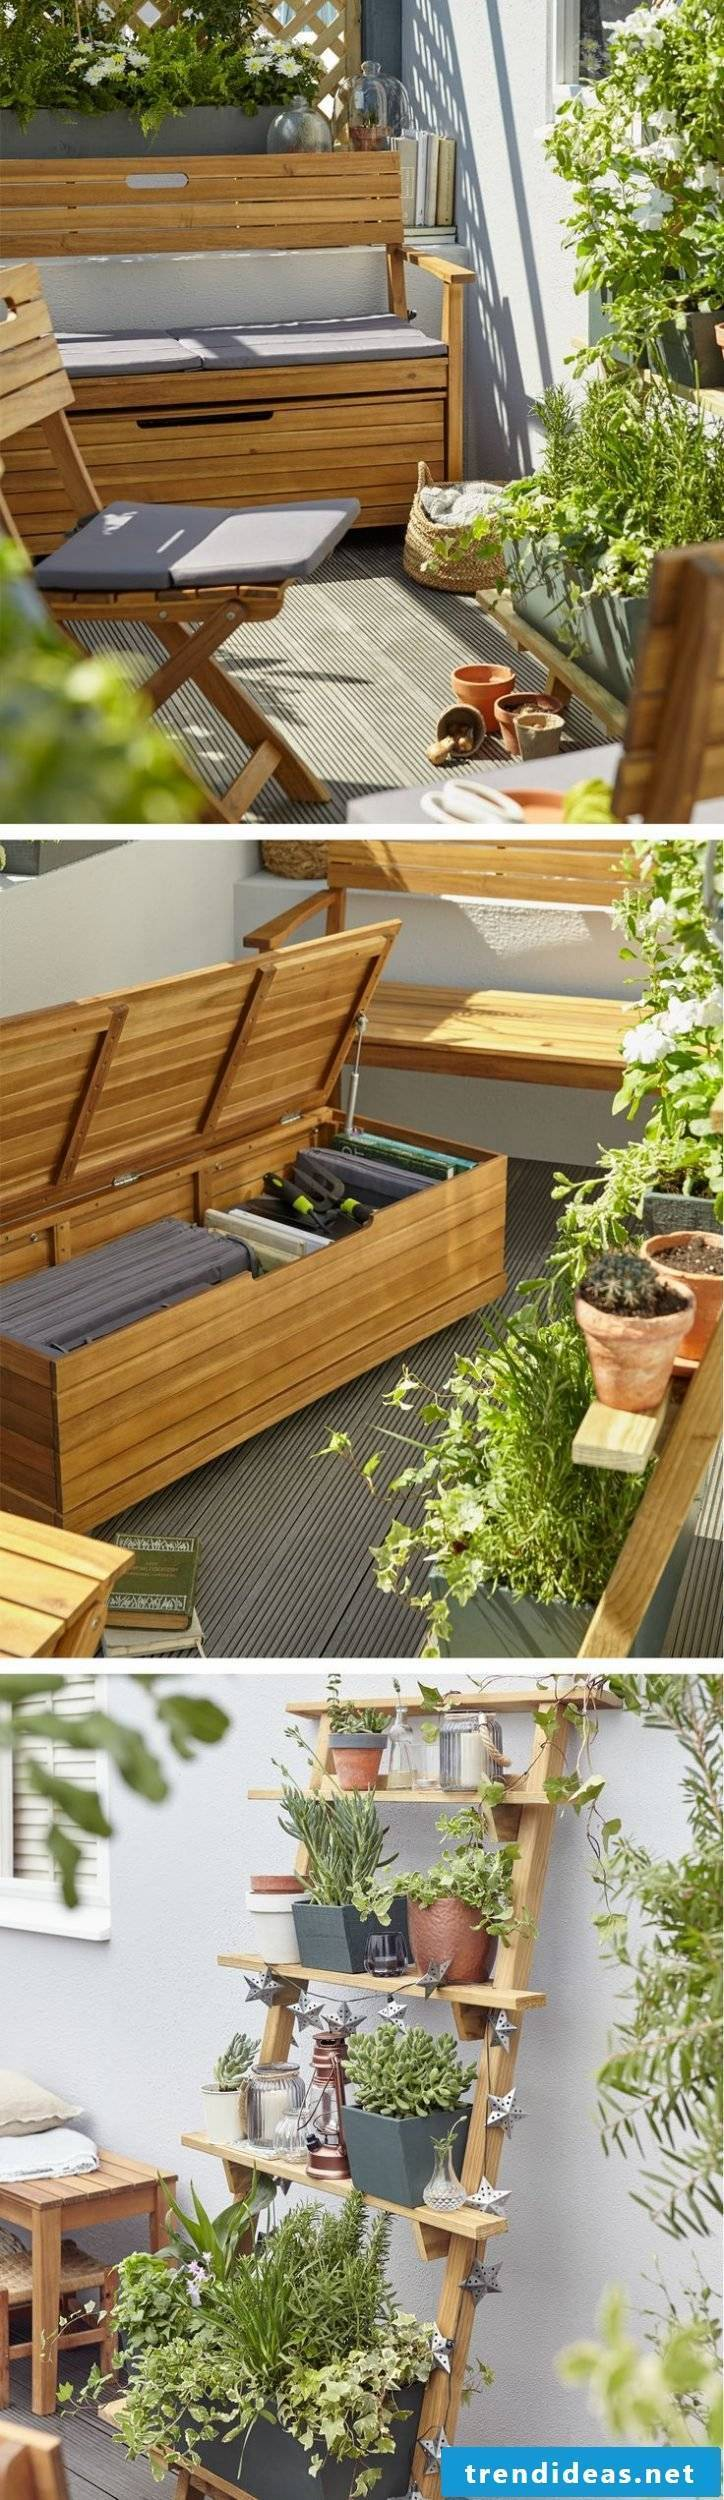 Terraces and garden design Ideas to imitate